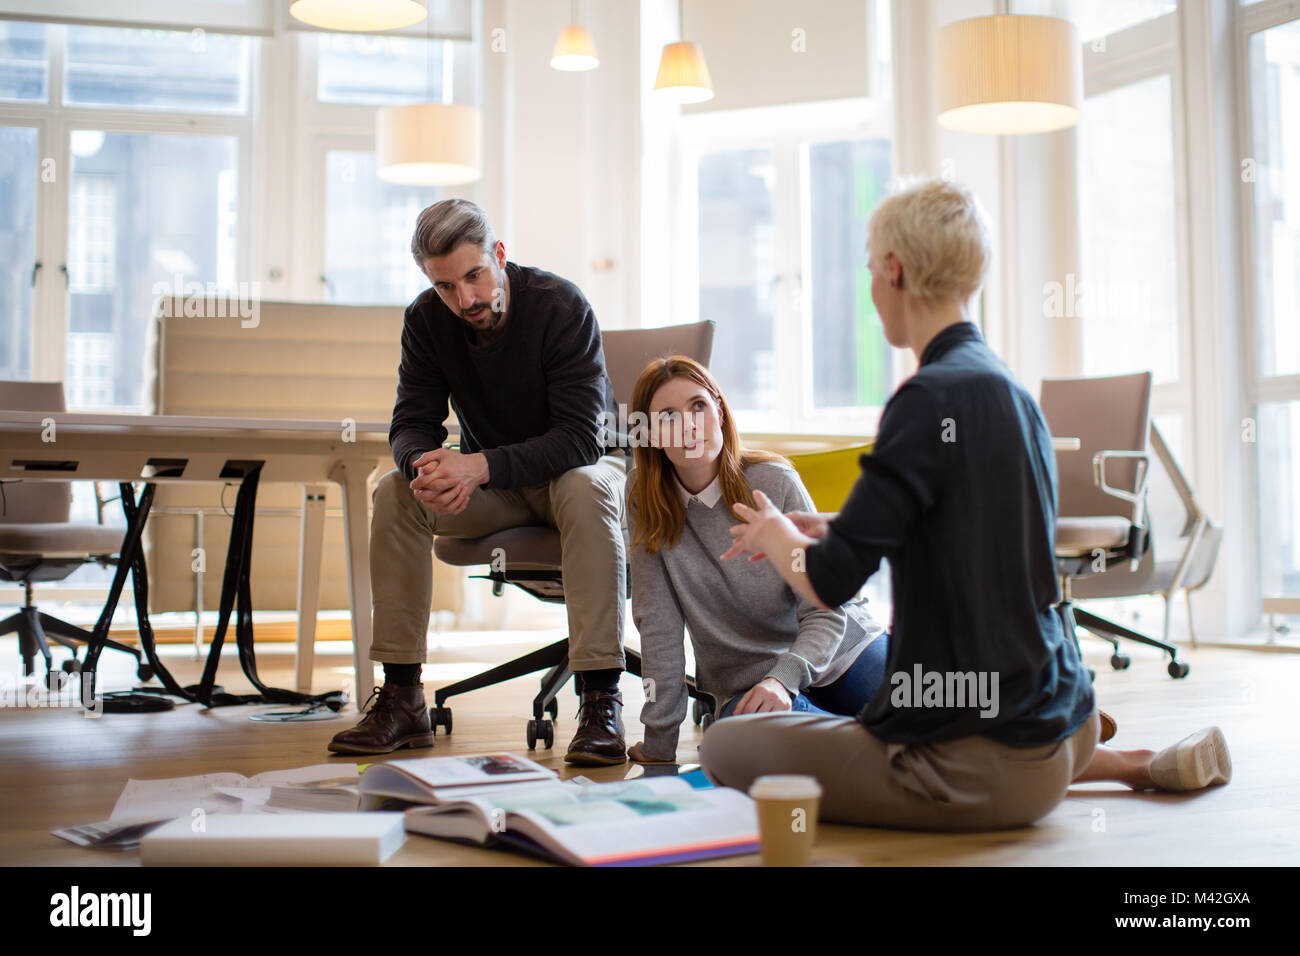 Group of designers discussing ideas with paperwork on office floor - Stock Image